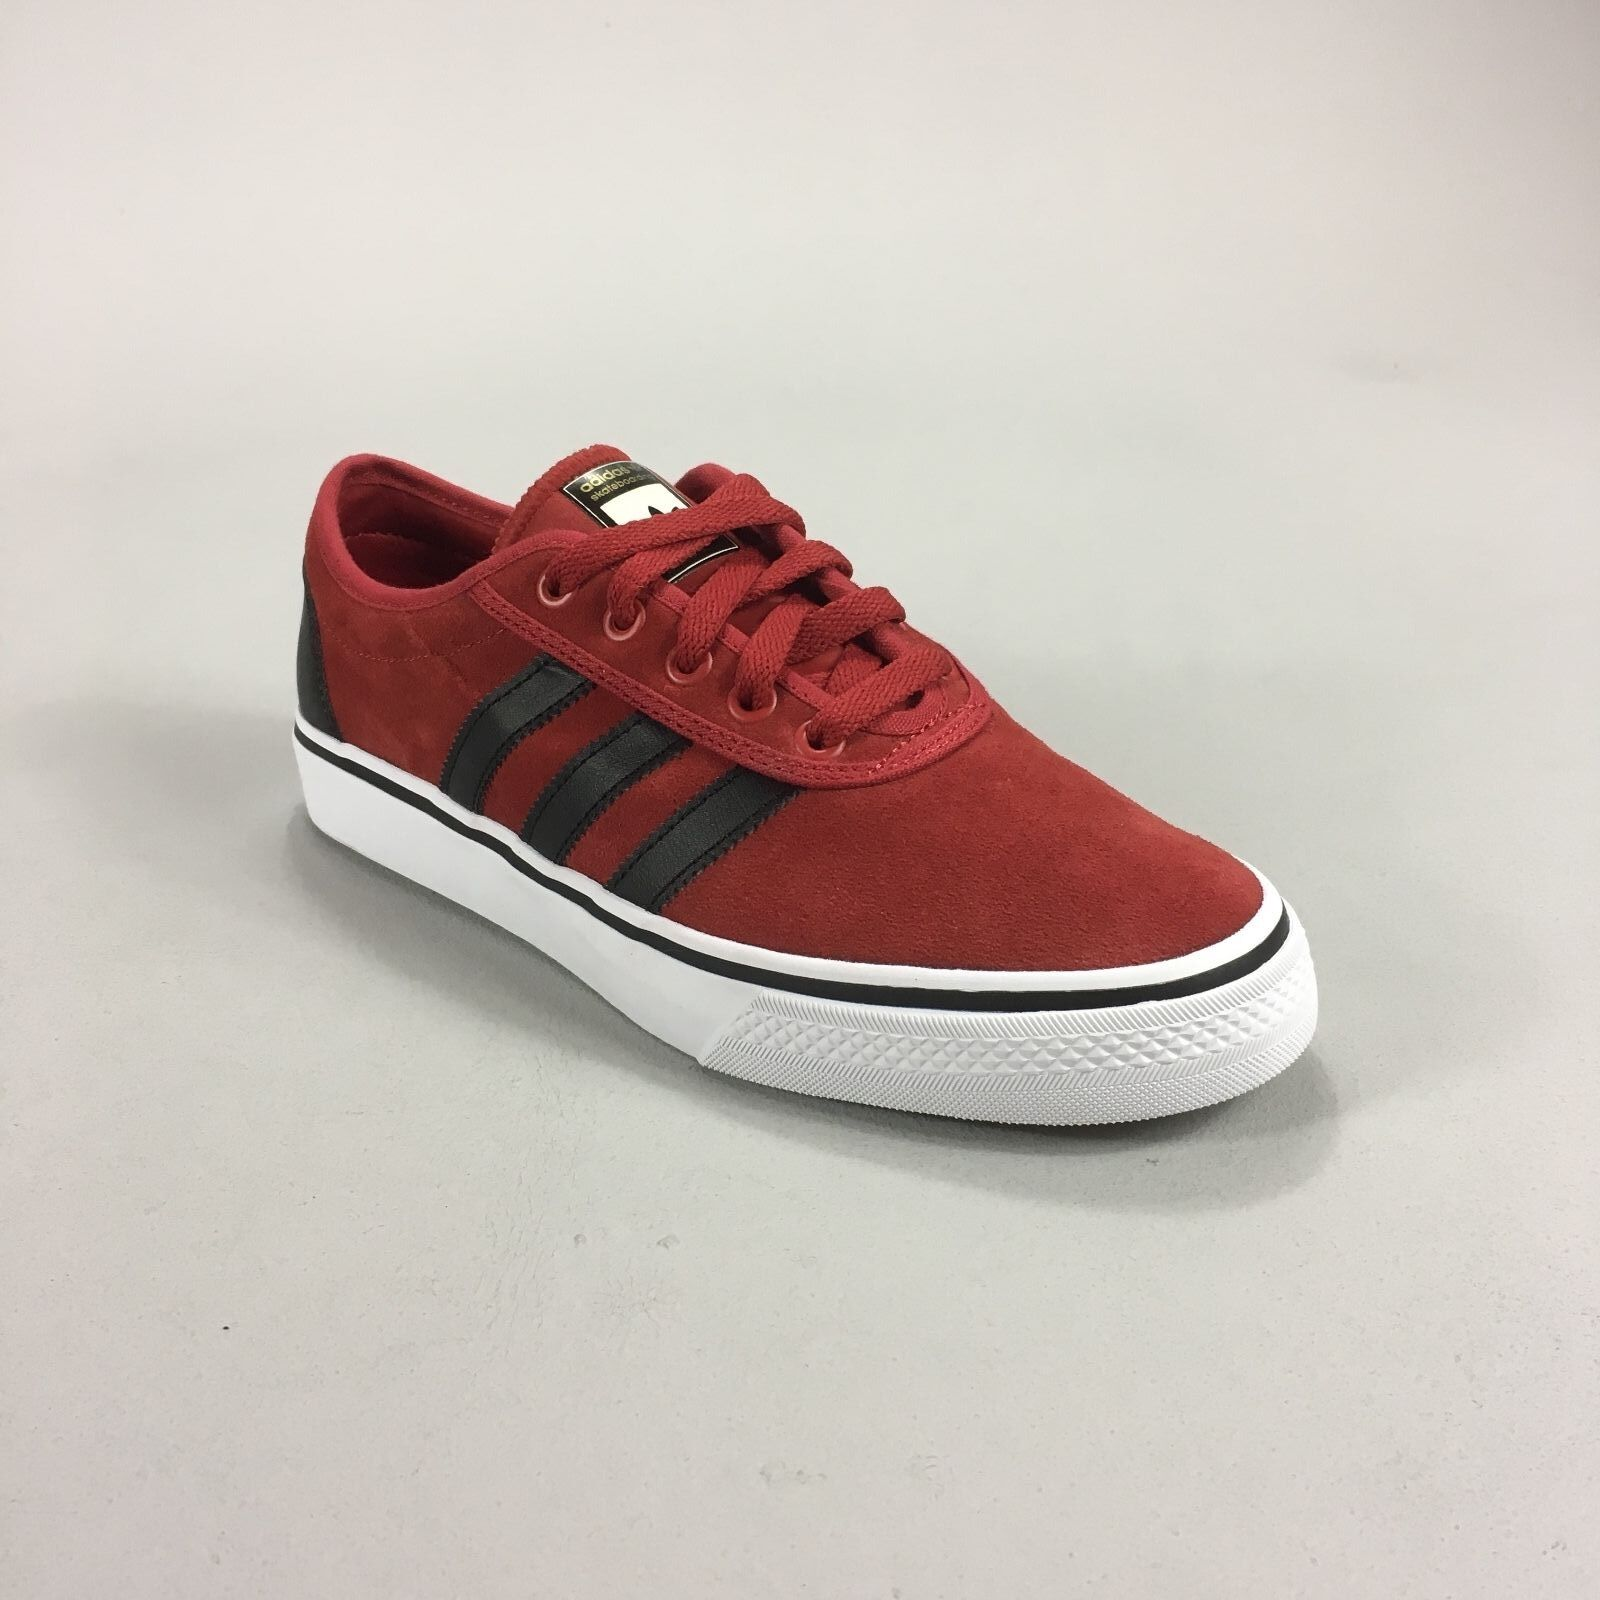 Adidas Adi-Ease Brand ADV Skate Trainers Schuhes Brand Adi-Ease new in box Größe UK 7,9 d267db